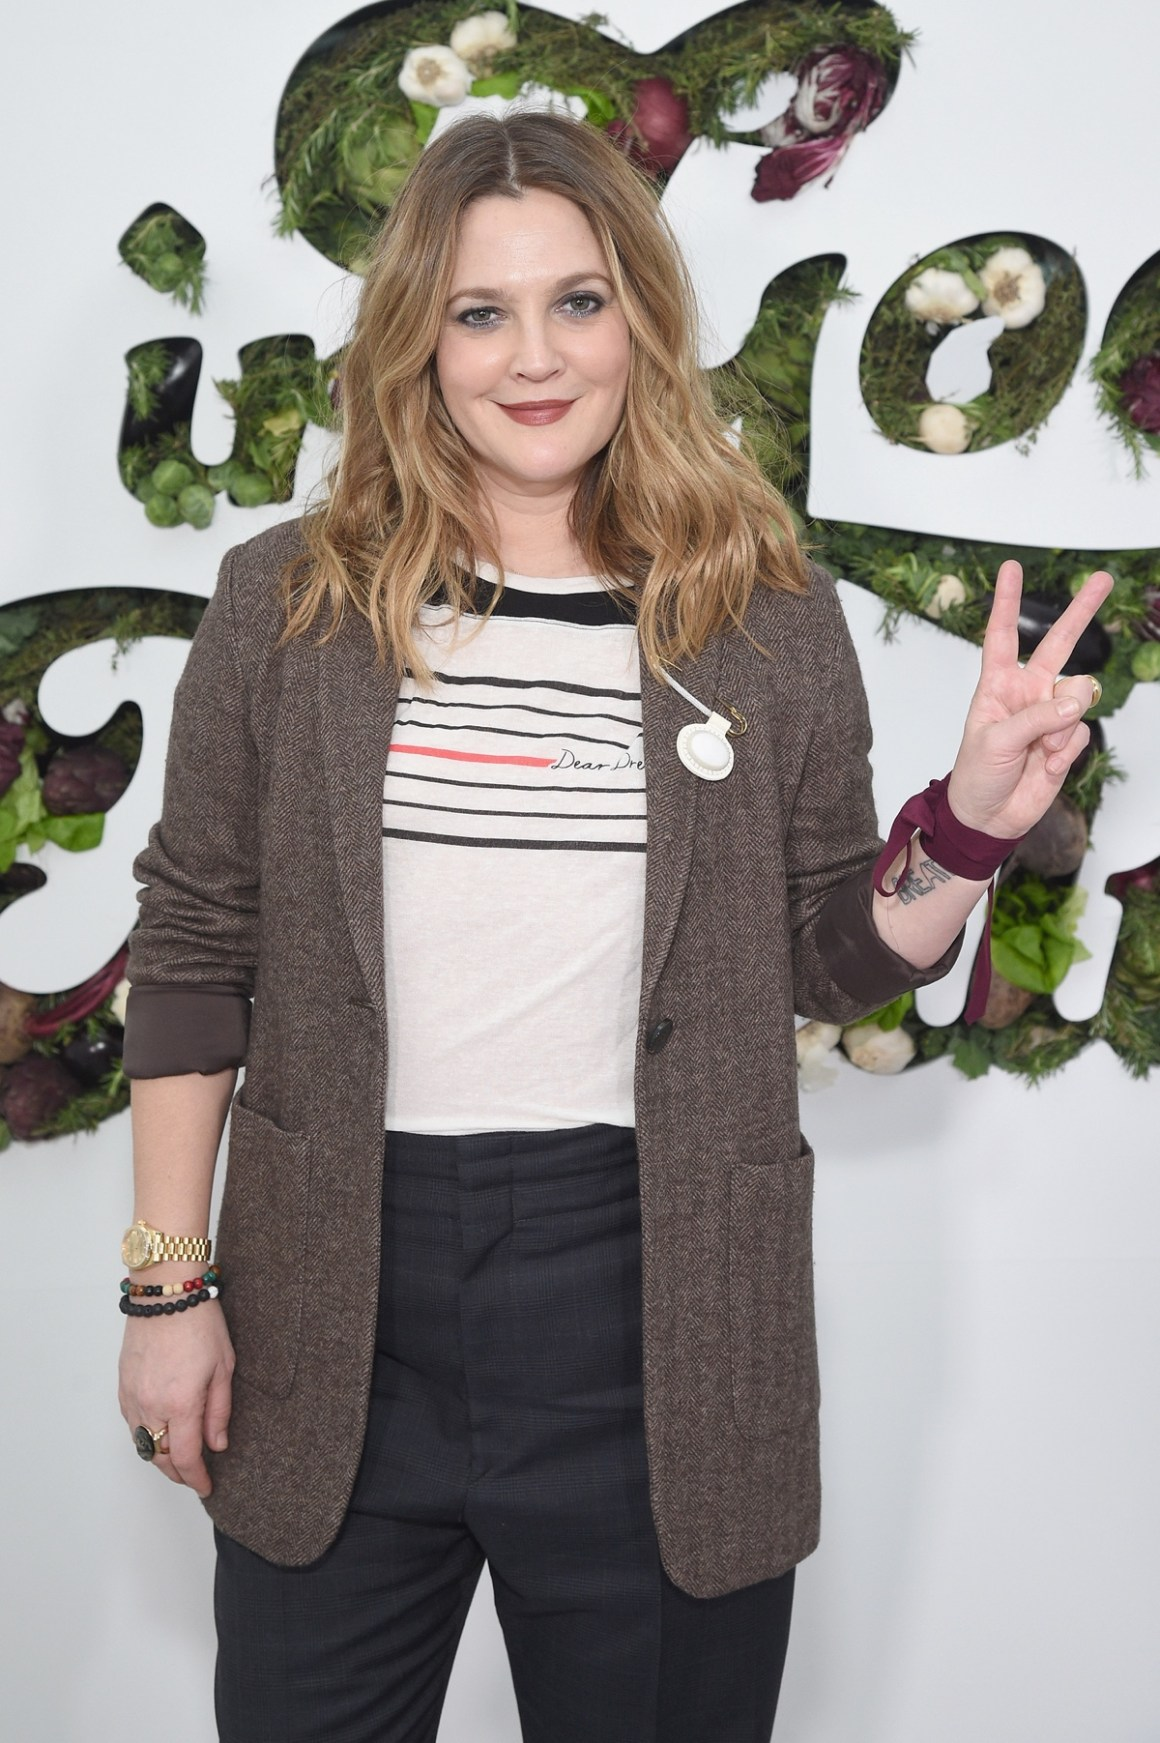 Drew Barrymore in goop Health Summit